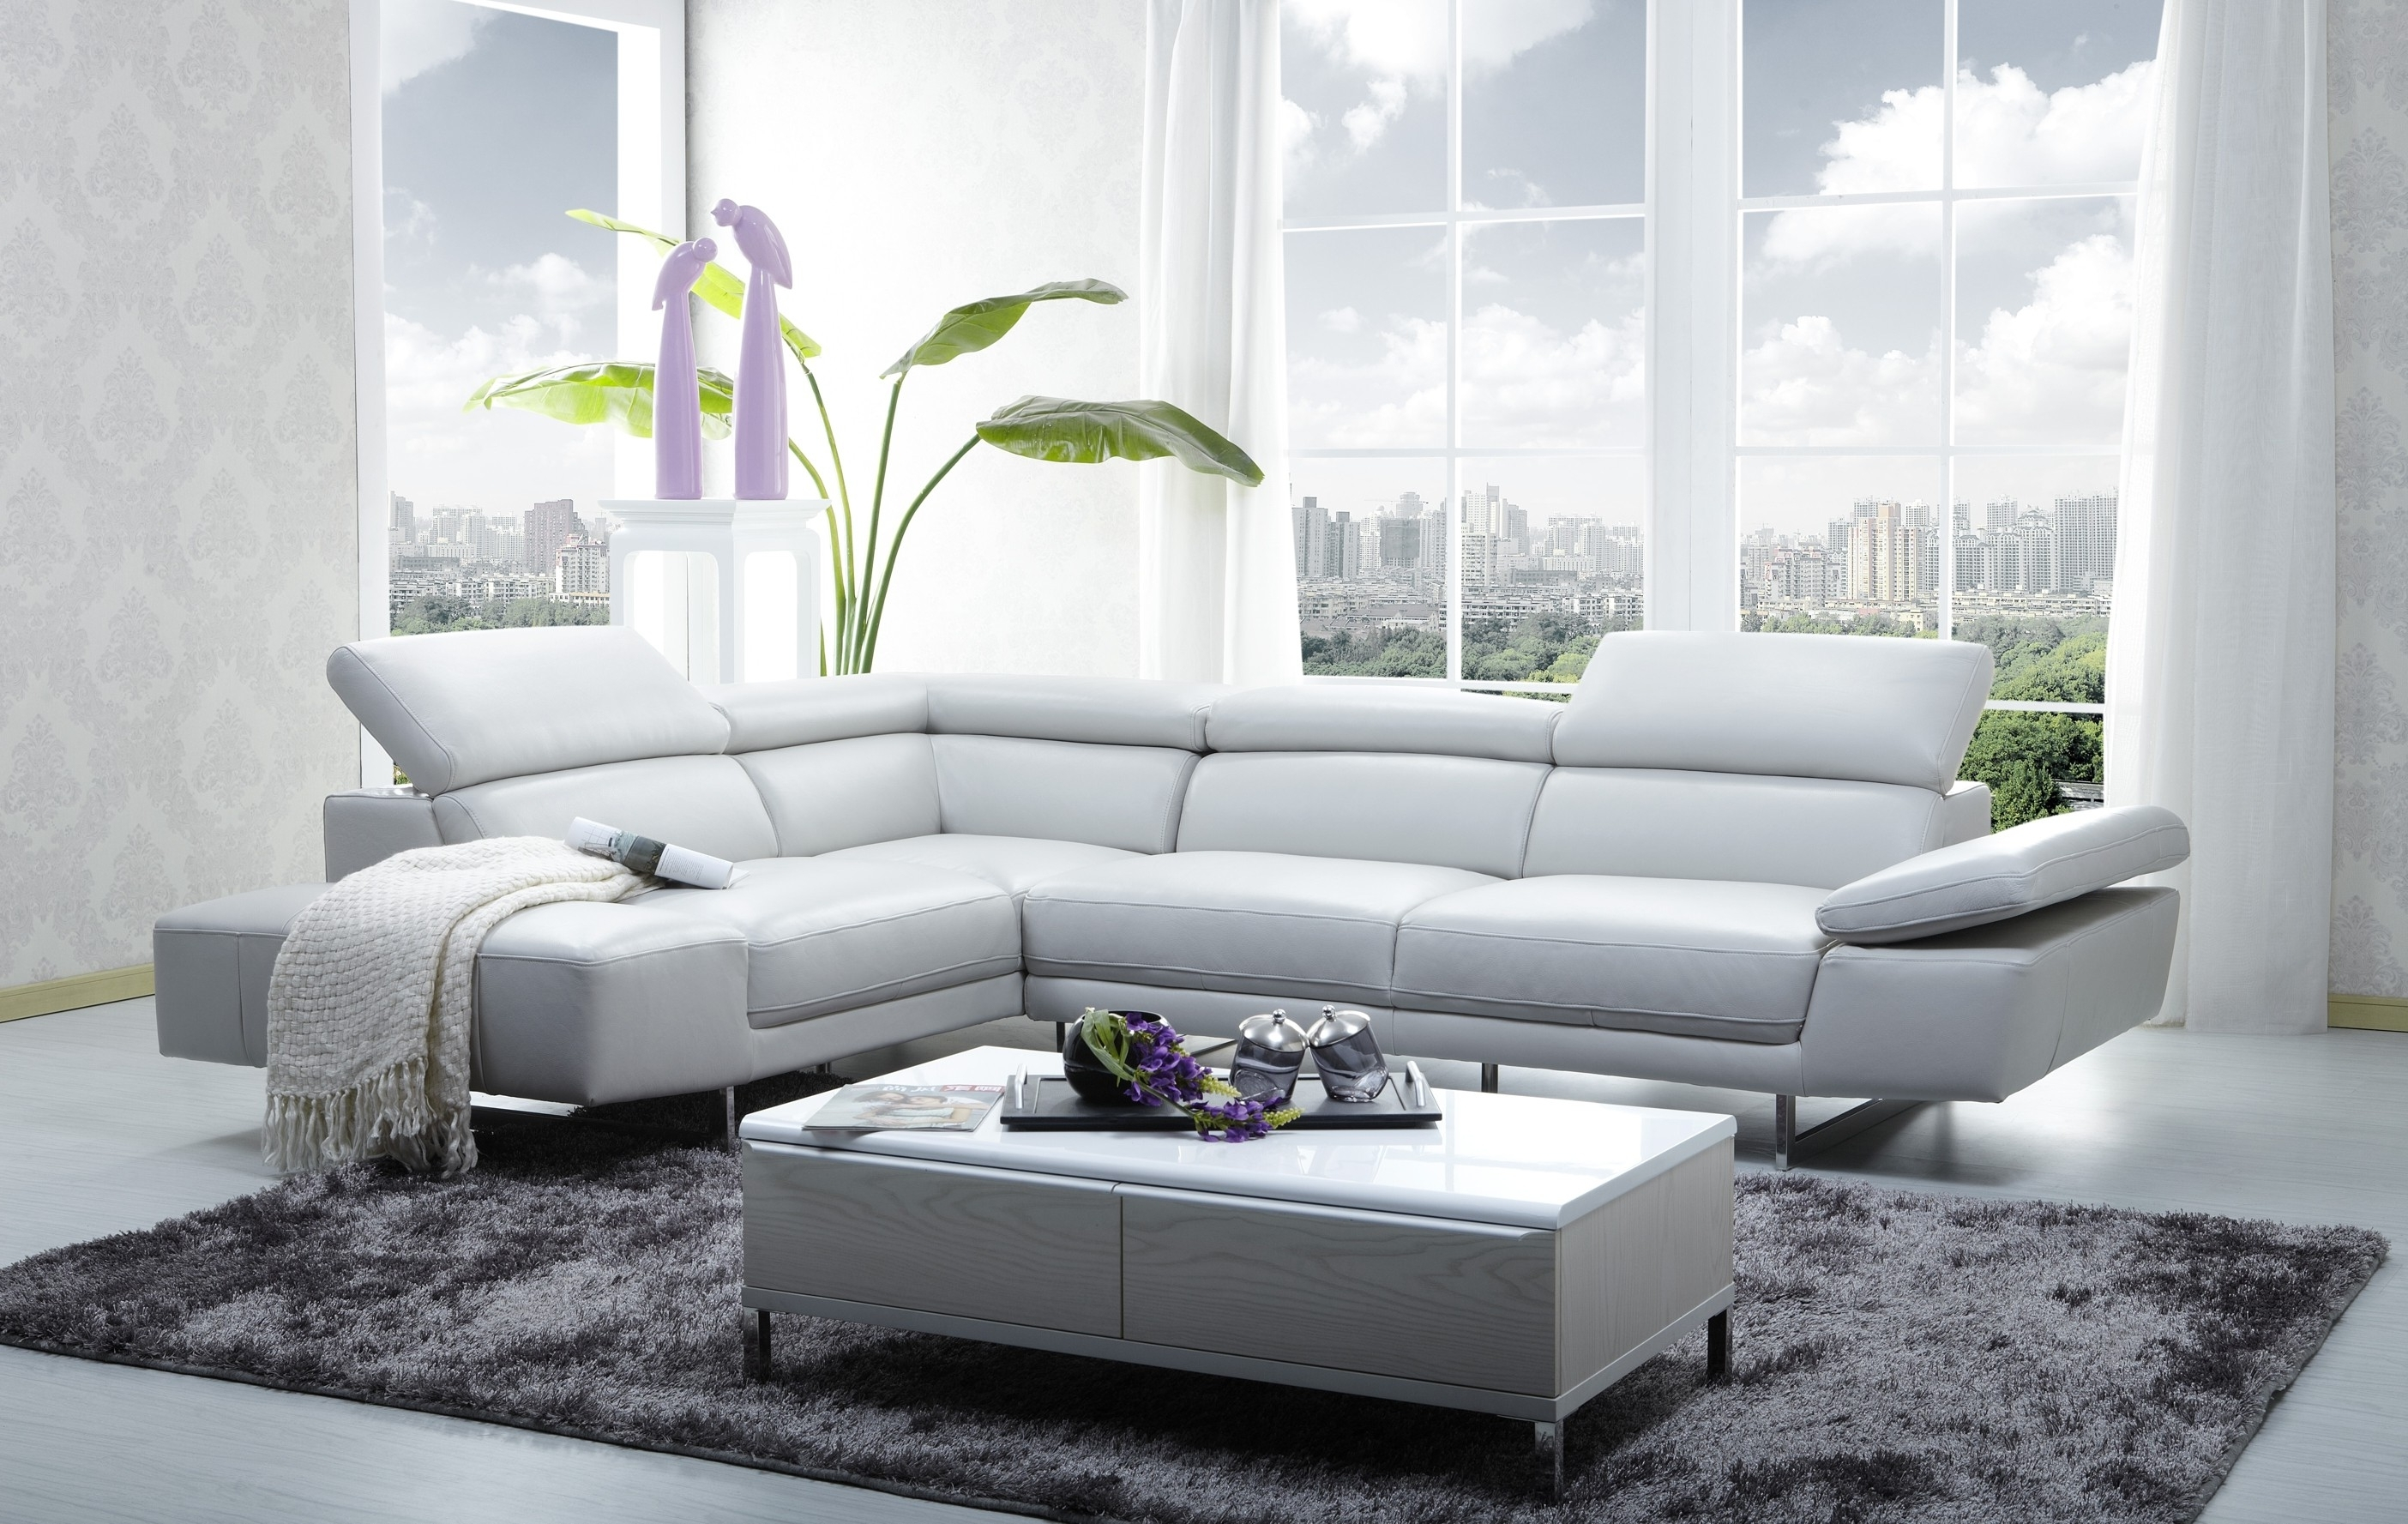 Sectional Sofas In Stock In Widely Used 1717 Italian Leather Modern Sectional Sofa (View 11 of 20)